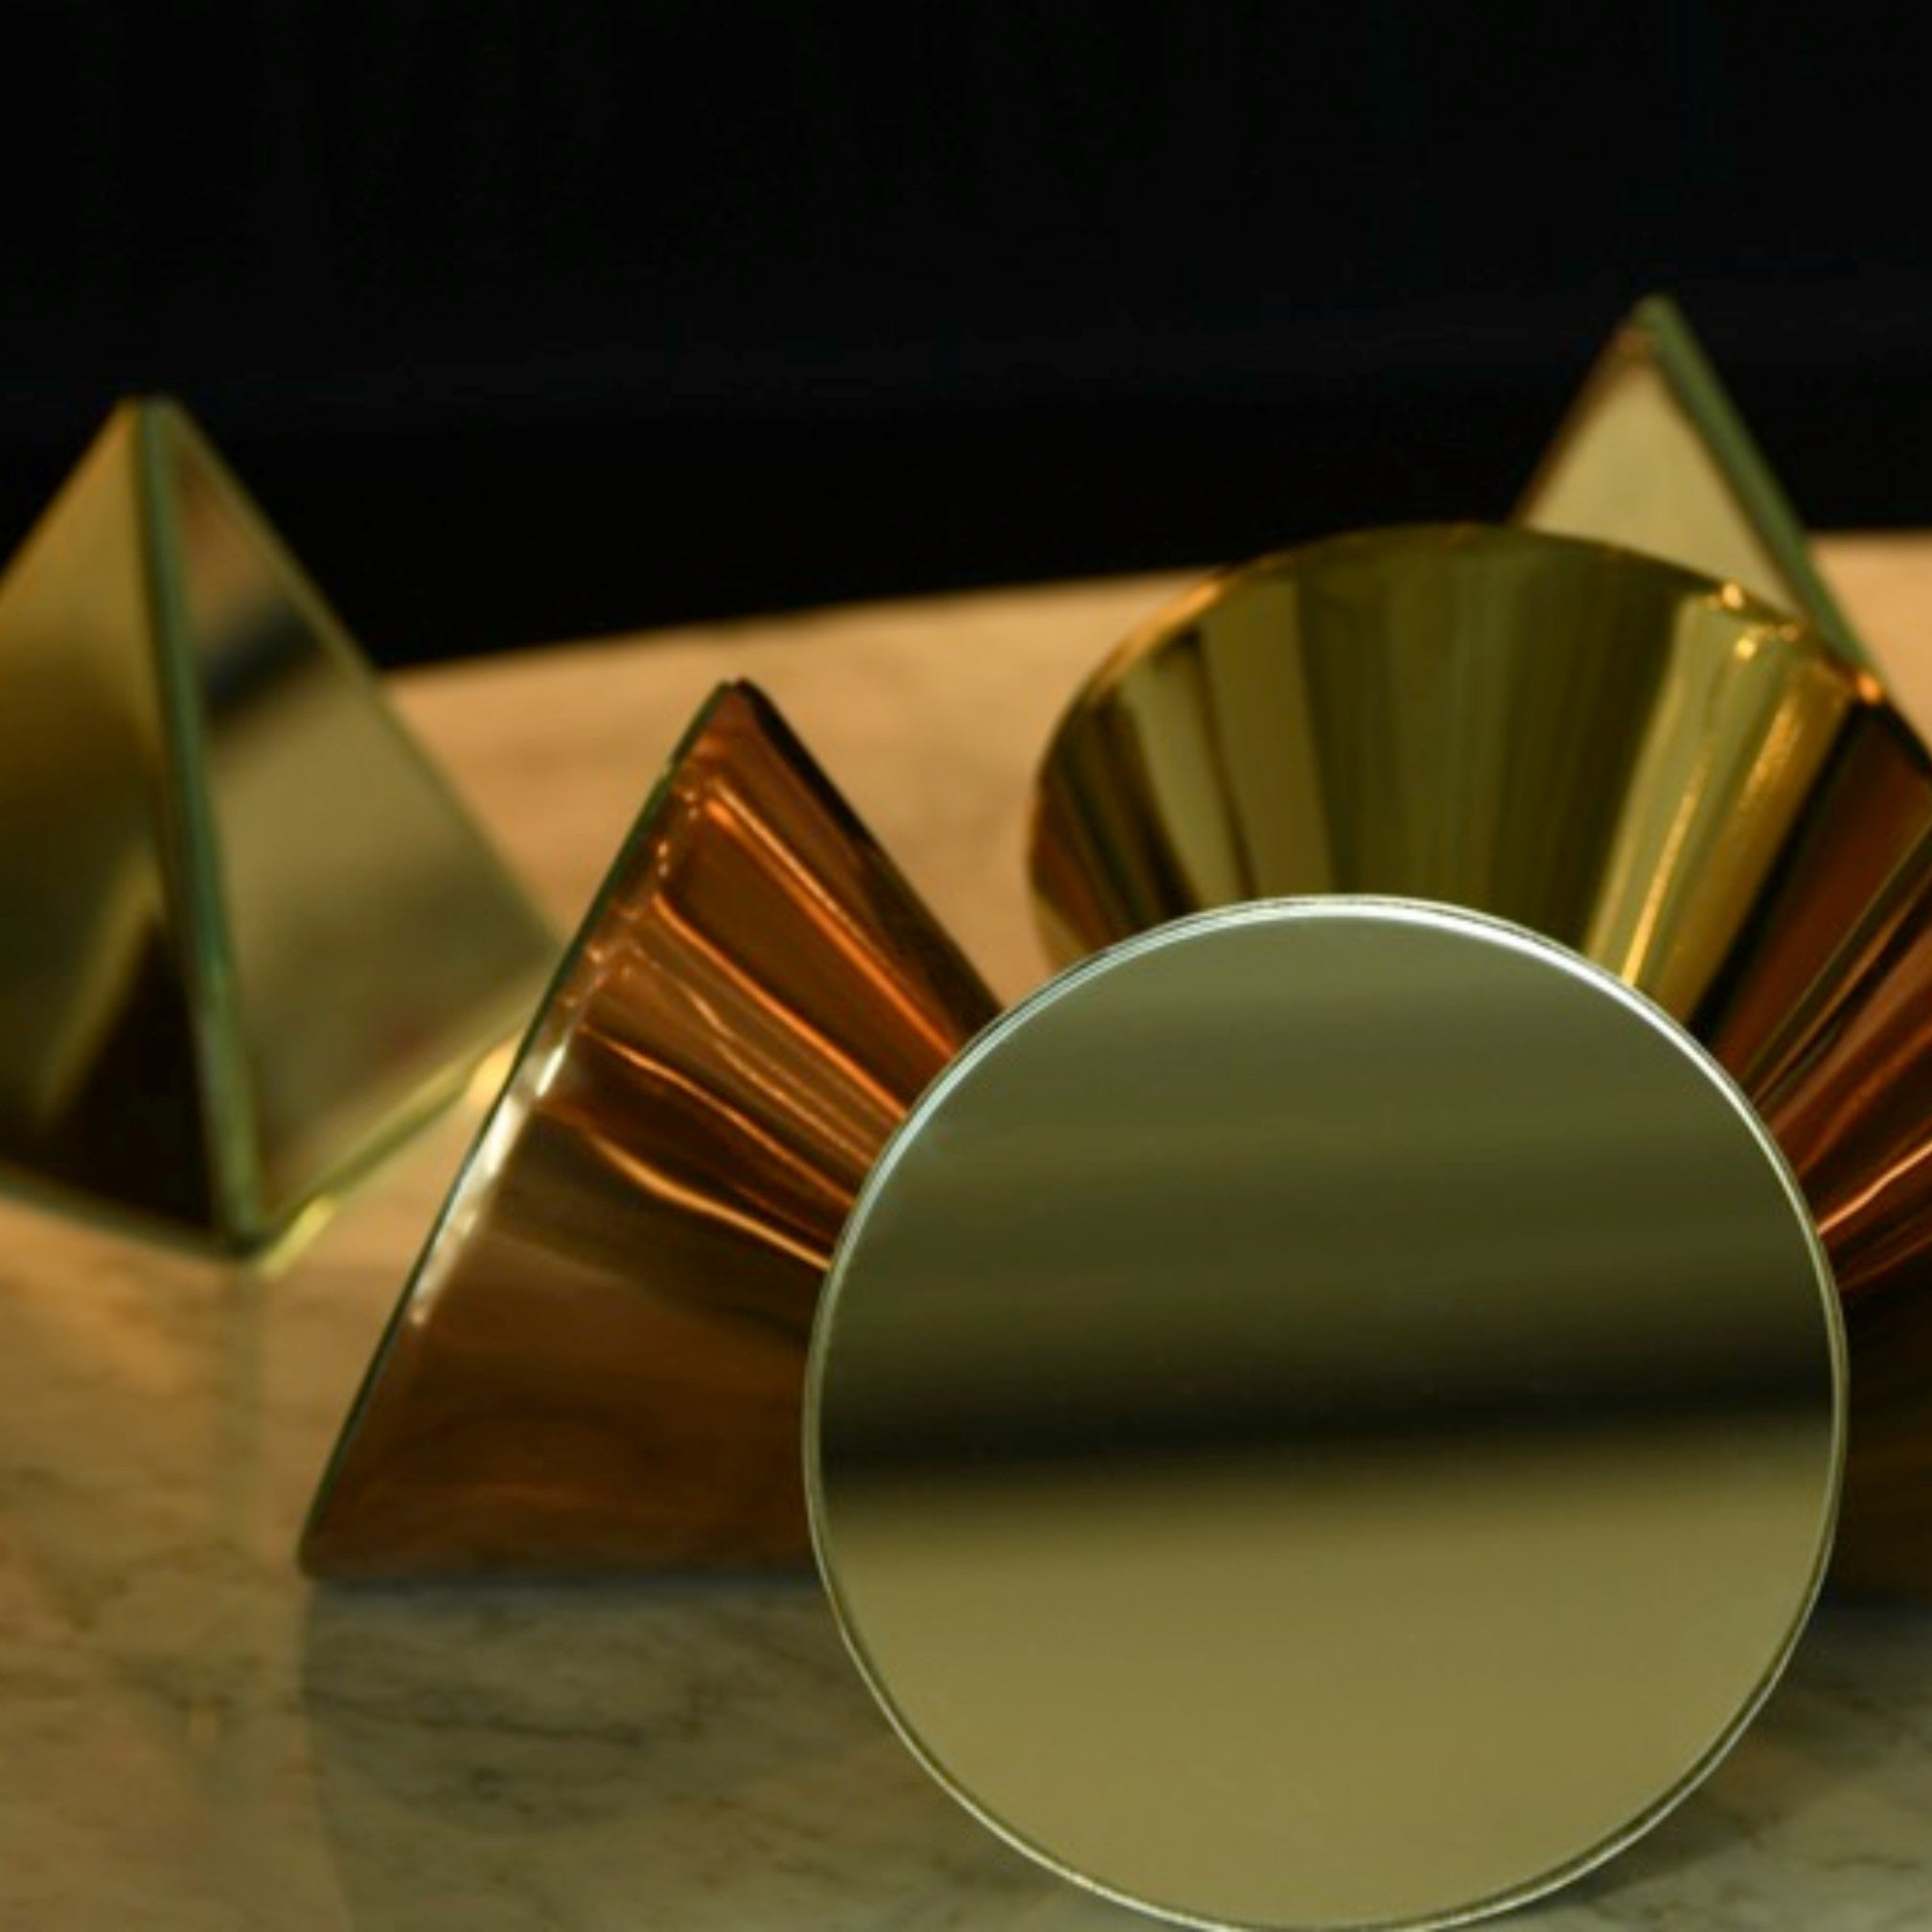 Conical Table Mirror Ornament in Gold or Rose Gold Finish 1 BHK Interiors